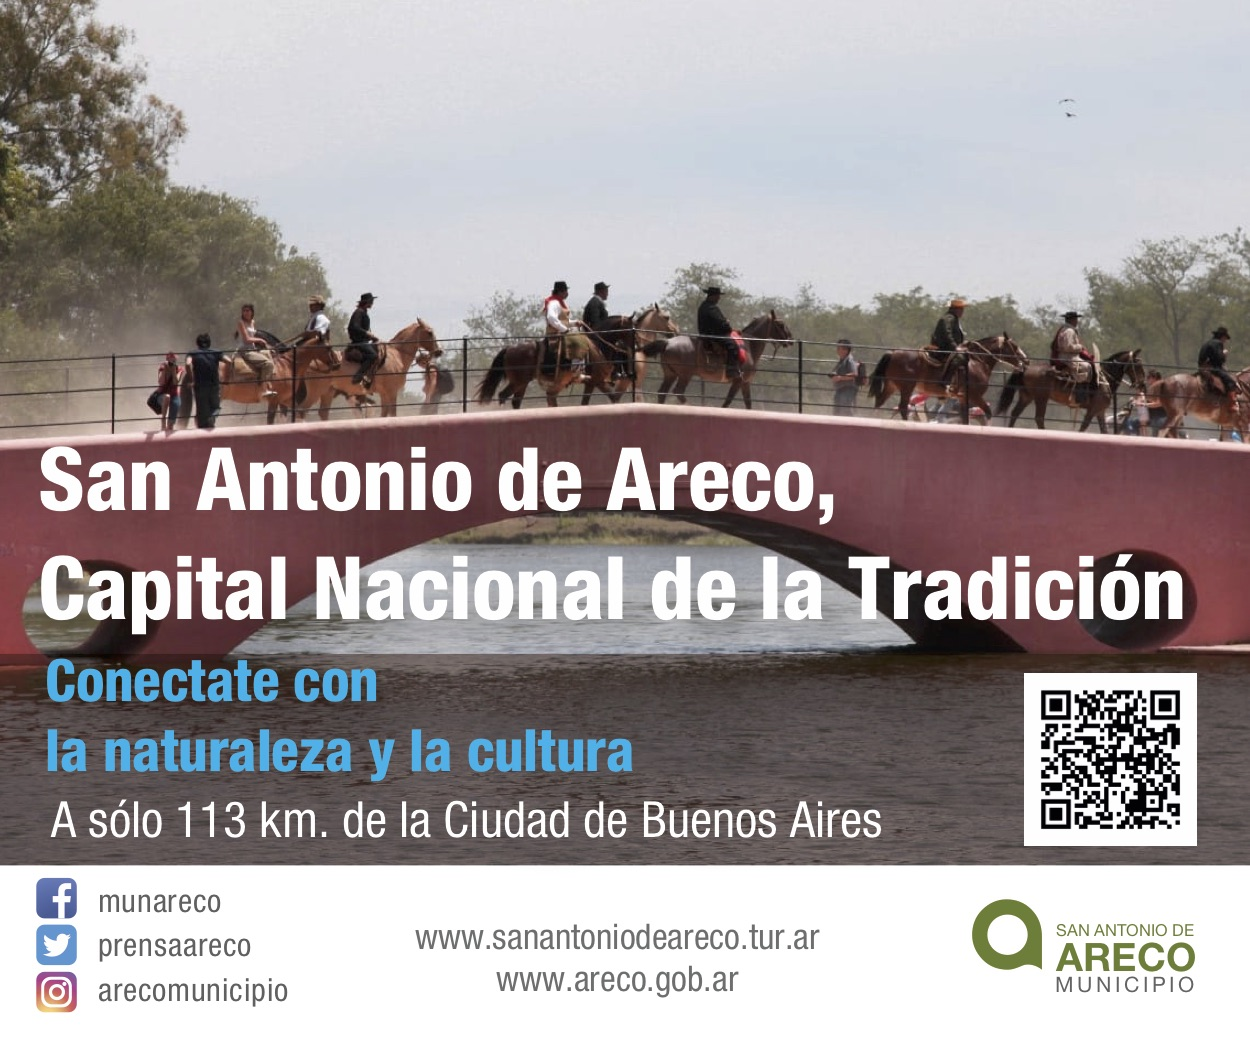 banner-areco-300x250-2.jpg